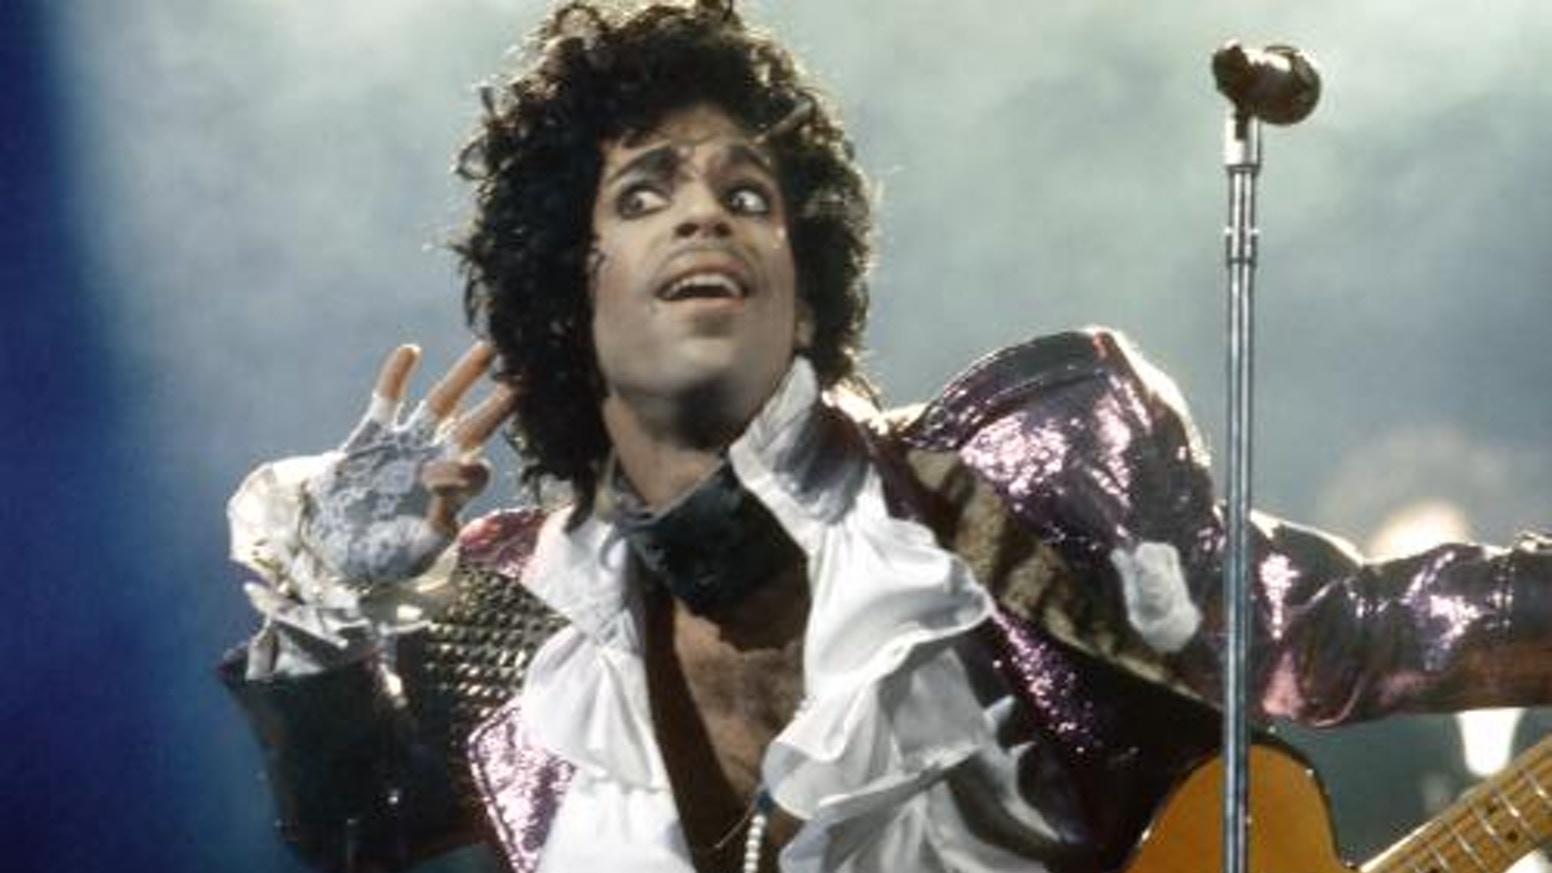 In 2011 R&B producer L.A. Reid suggested that in a few years Kanye West would be considered as great as Prince. Not on my watch.